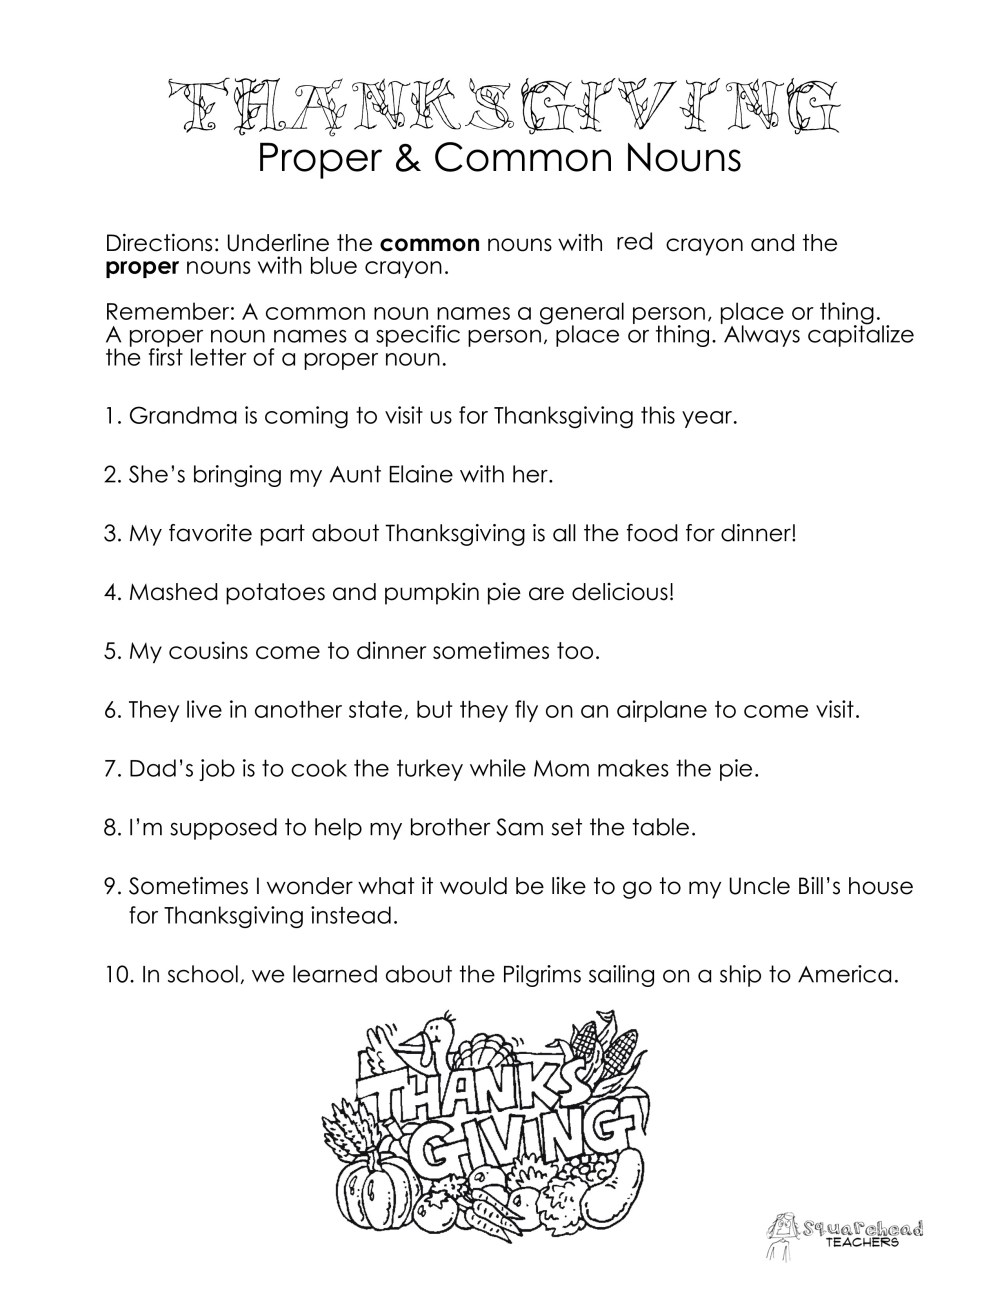 medium resolution of Thanksgiving Common vs. Proper Nouns worksheet   Squarehead Teachers